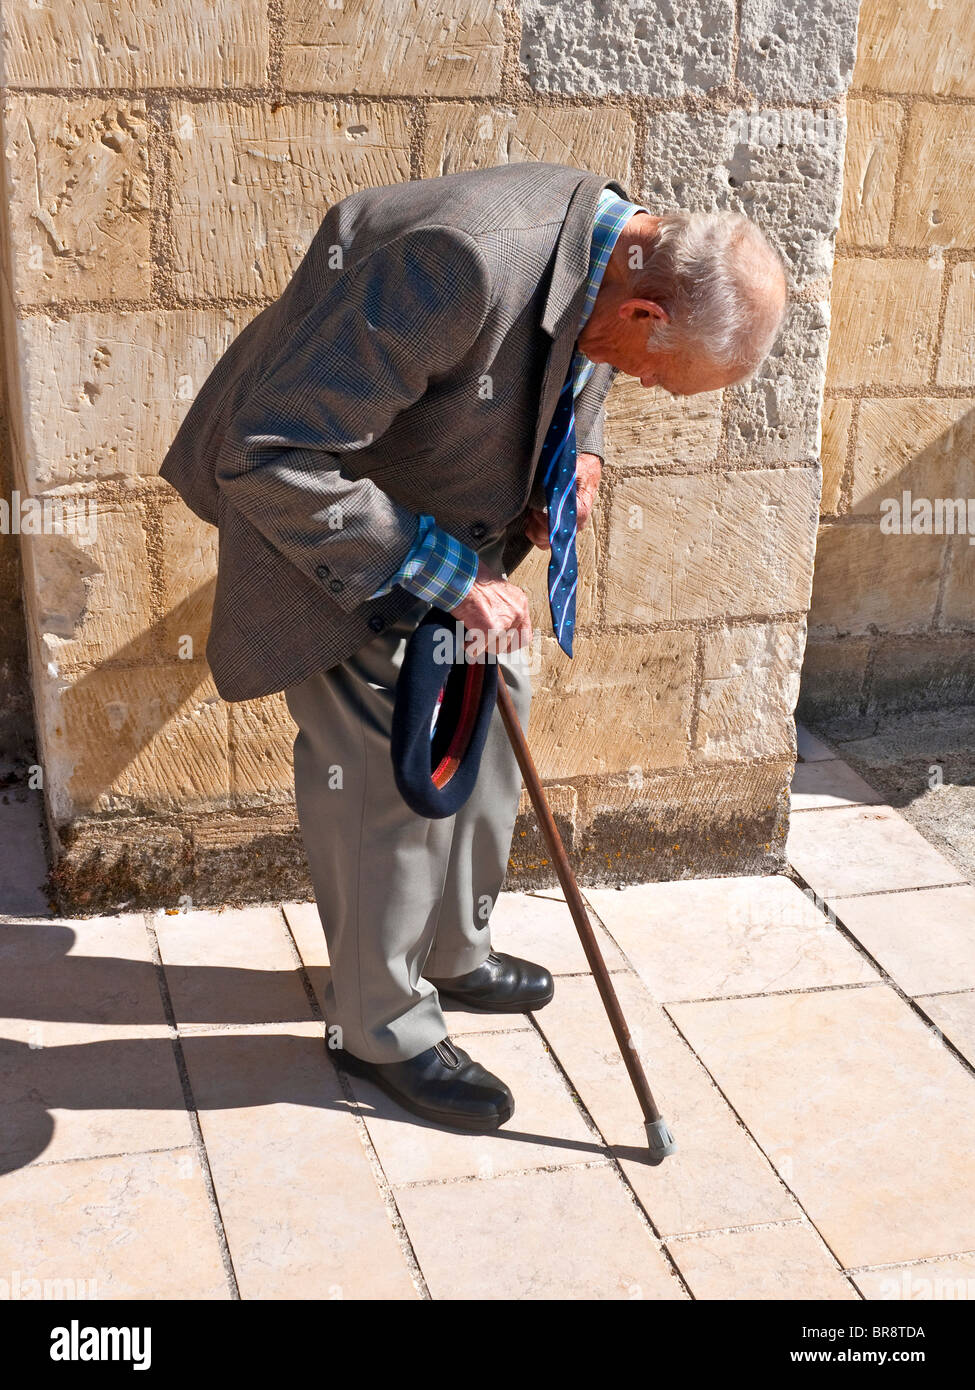 Old hunch-back man with walking stick resting on sidewalk - France. - Stock Image